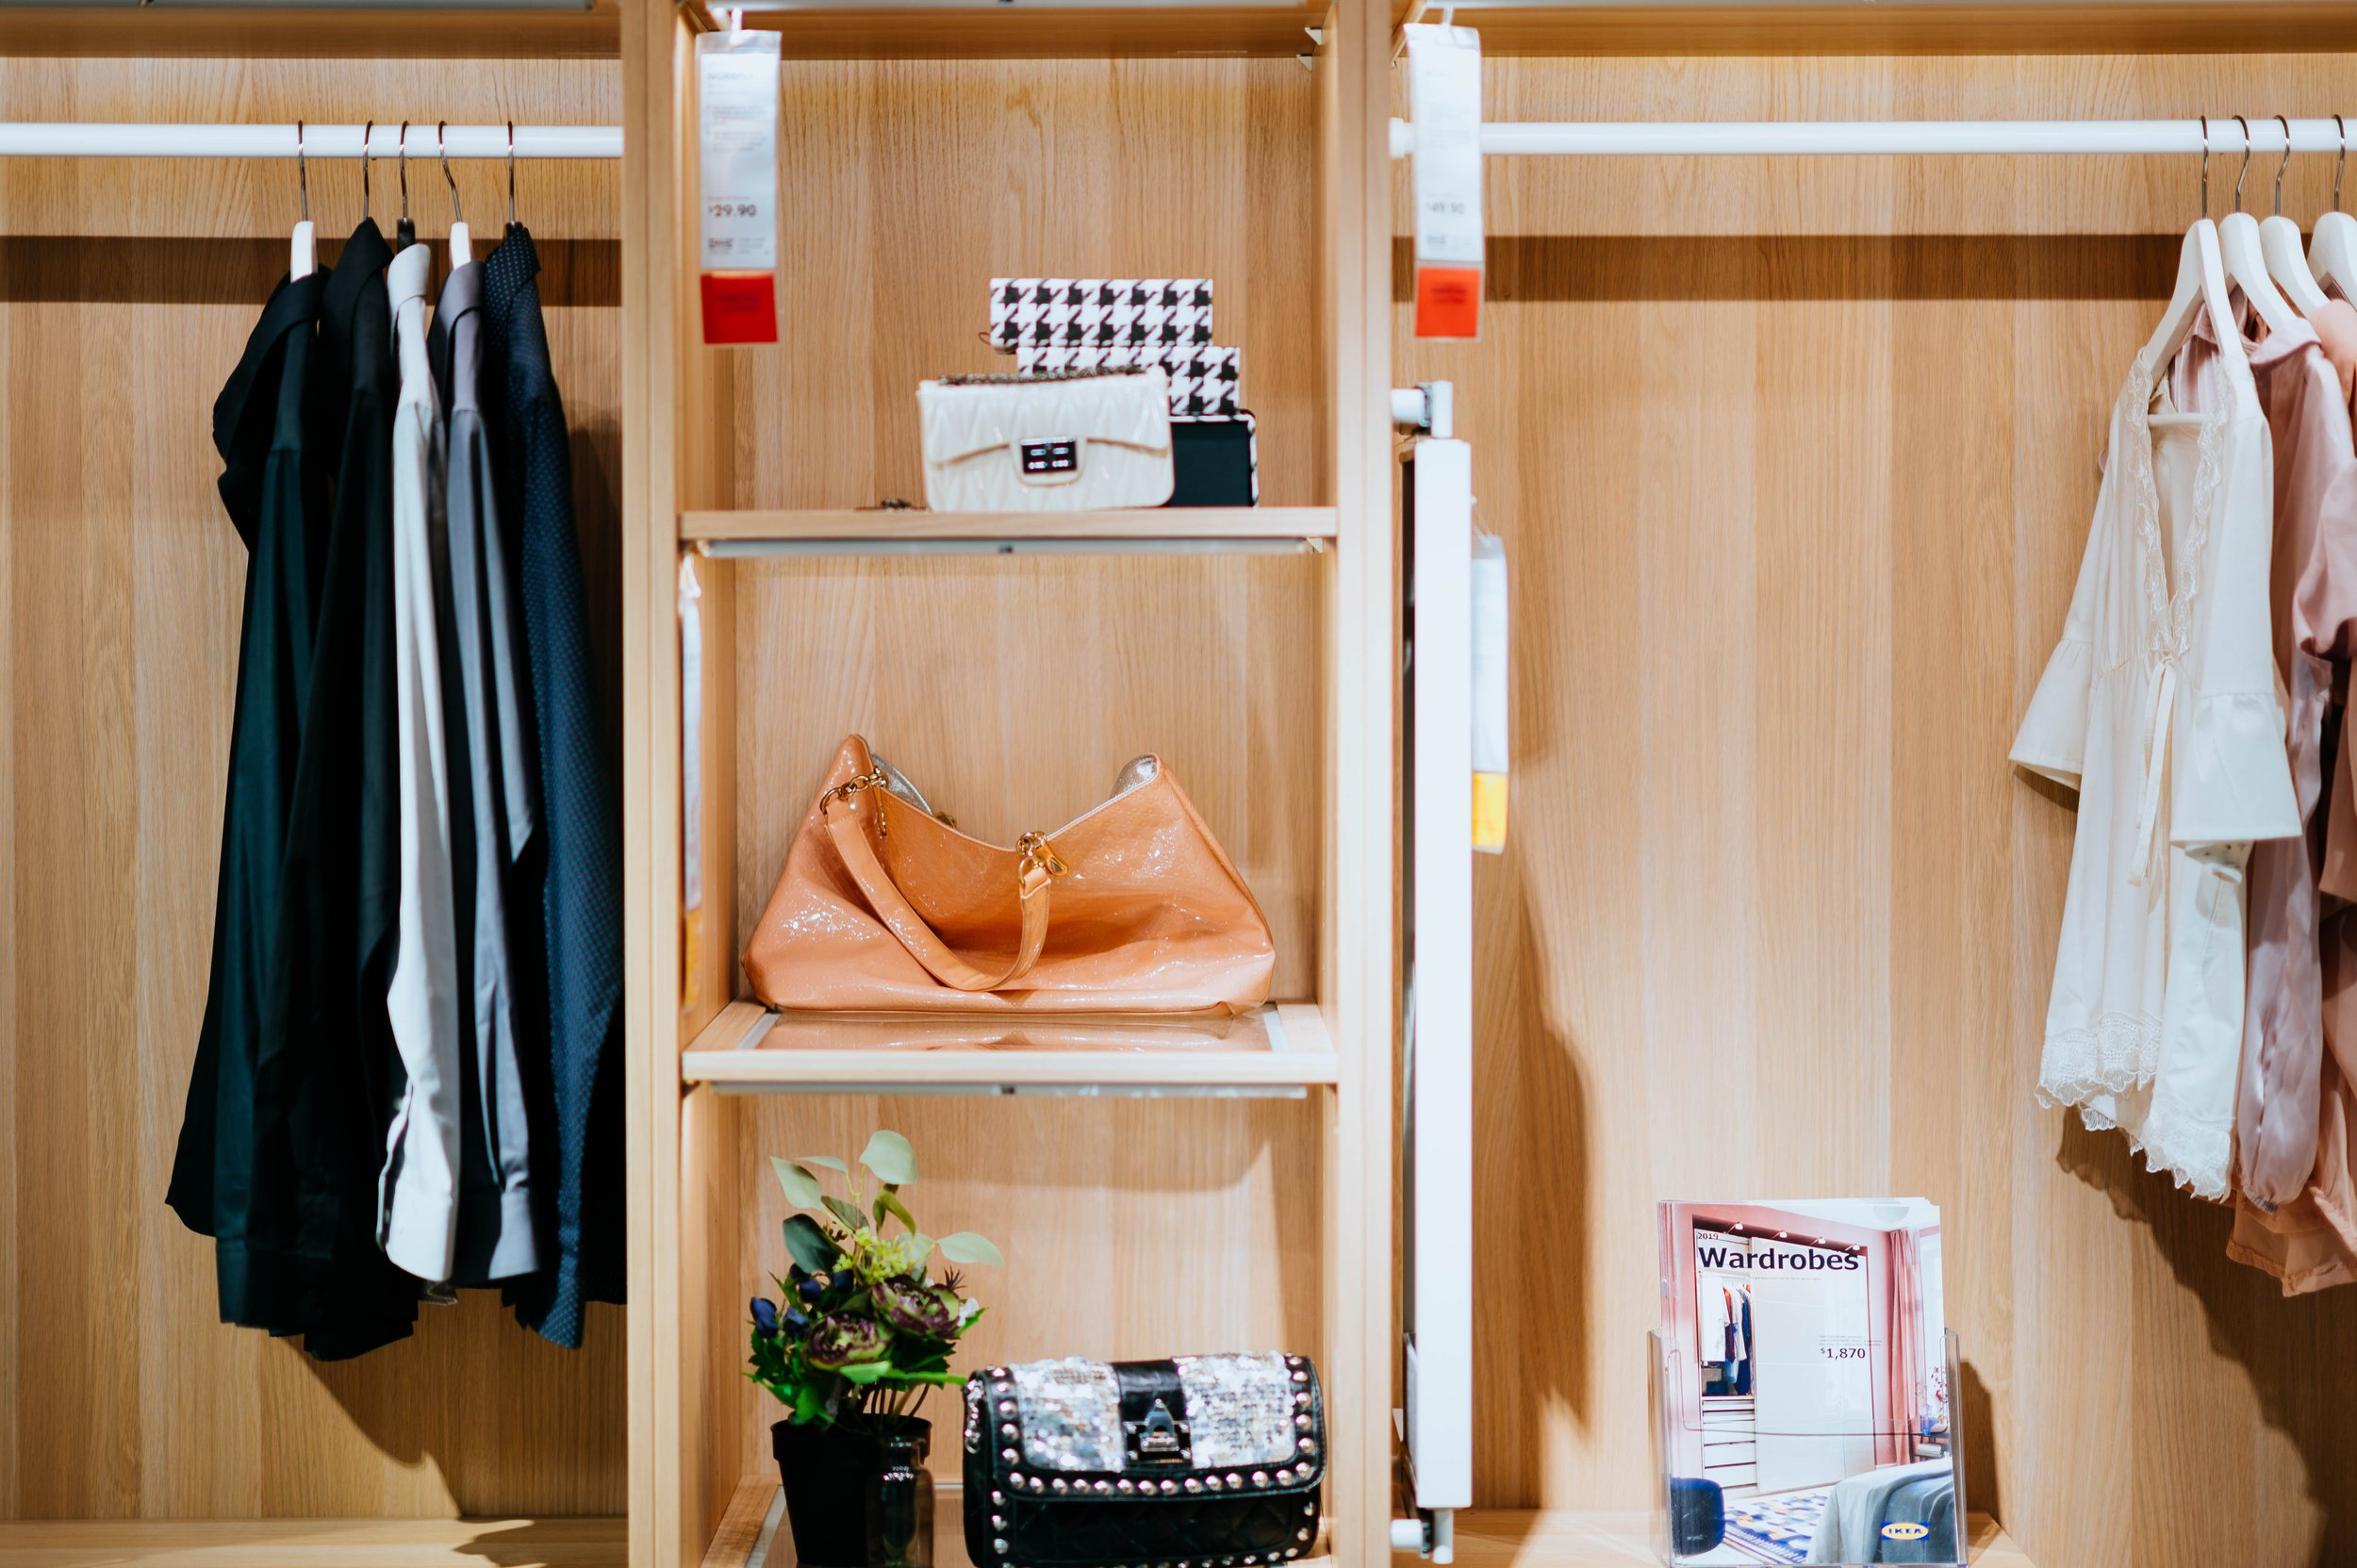 2) Organize by Style - Organize items by style this will help to move seasonal items to the back of the closet and reduce your choices. This will save a lot of time during the week when you are getting ready for work.Photo by chuttersnap on Unsplash